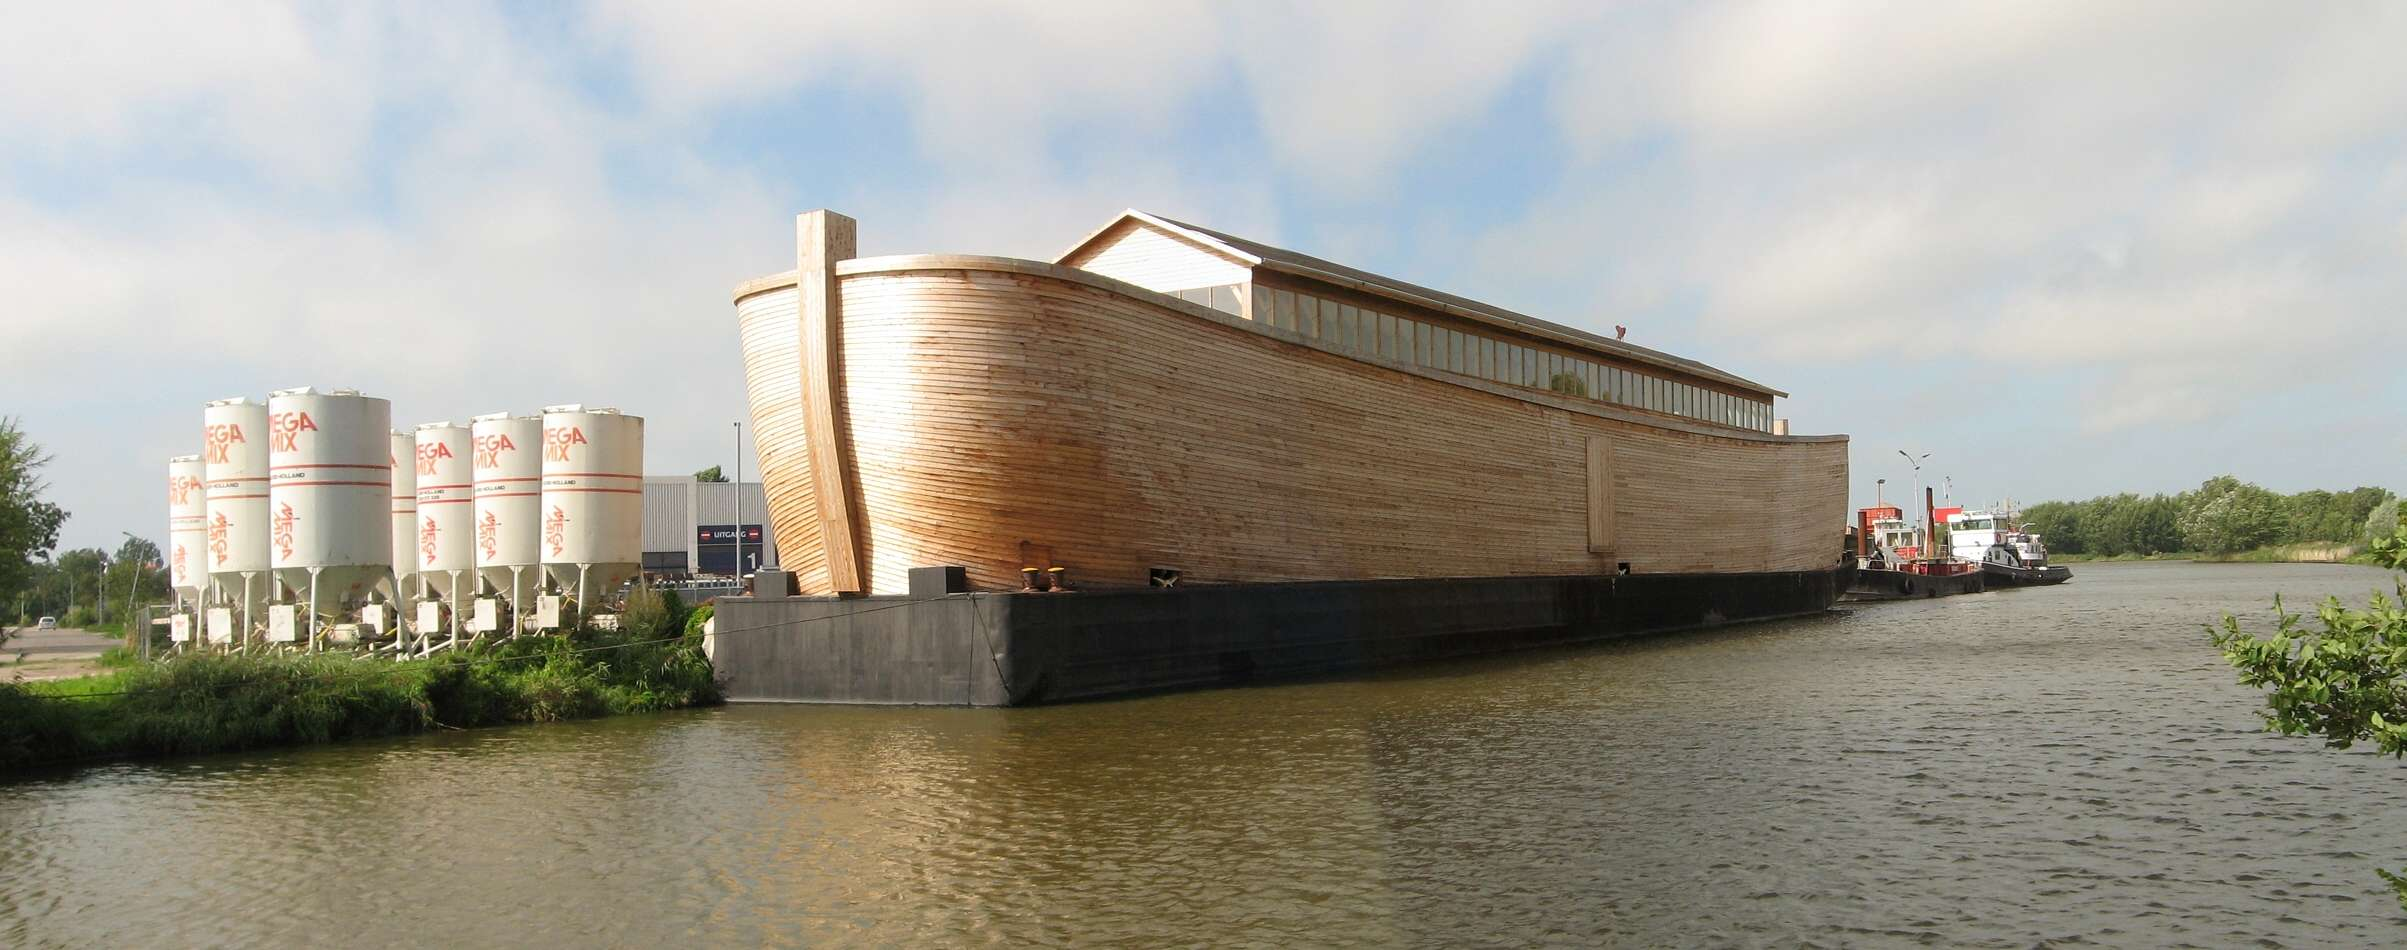 Noah's Ark, Judges & Lessons Not Learned | Notes from a ...